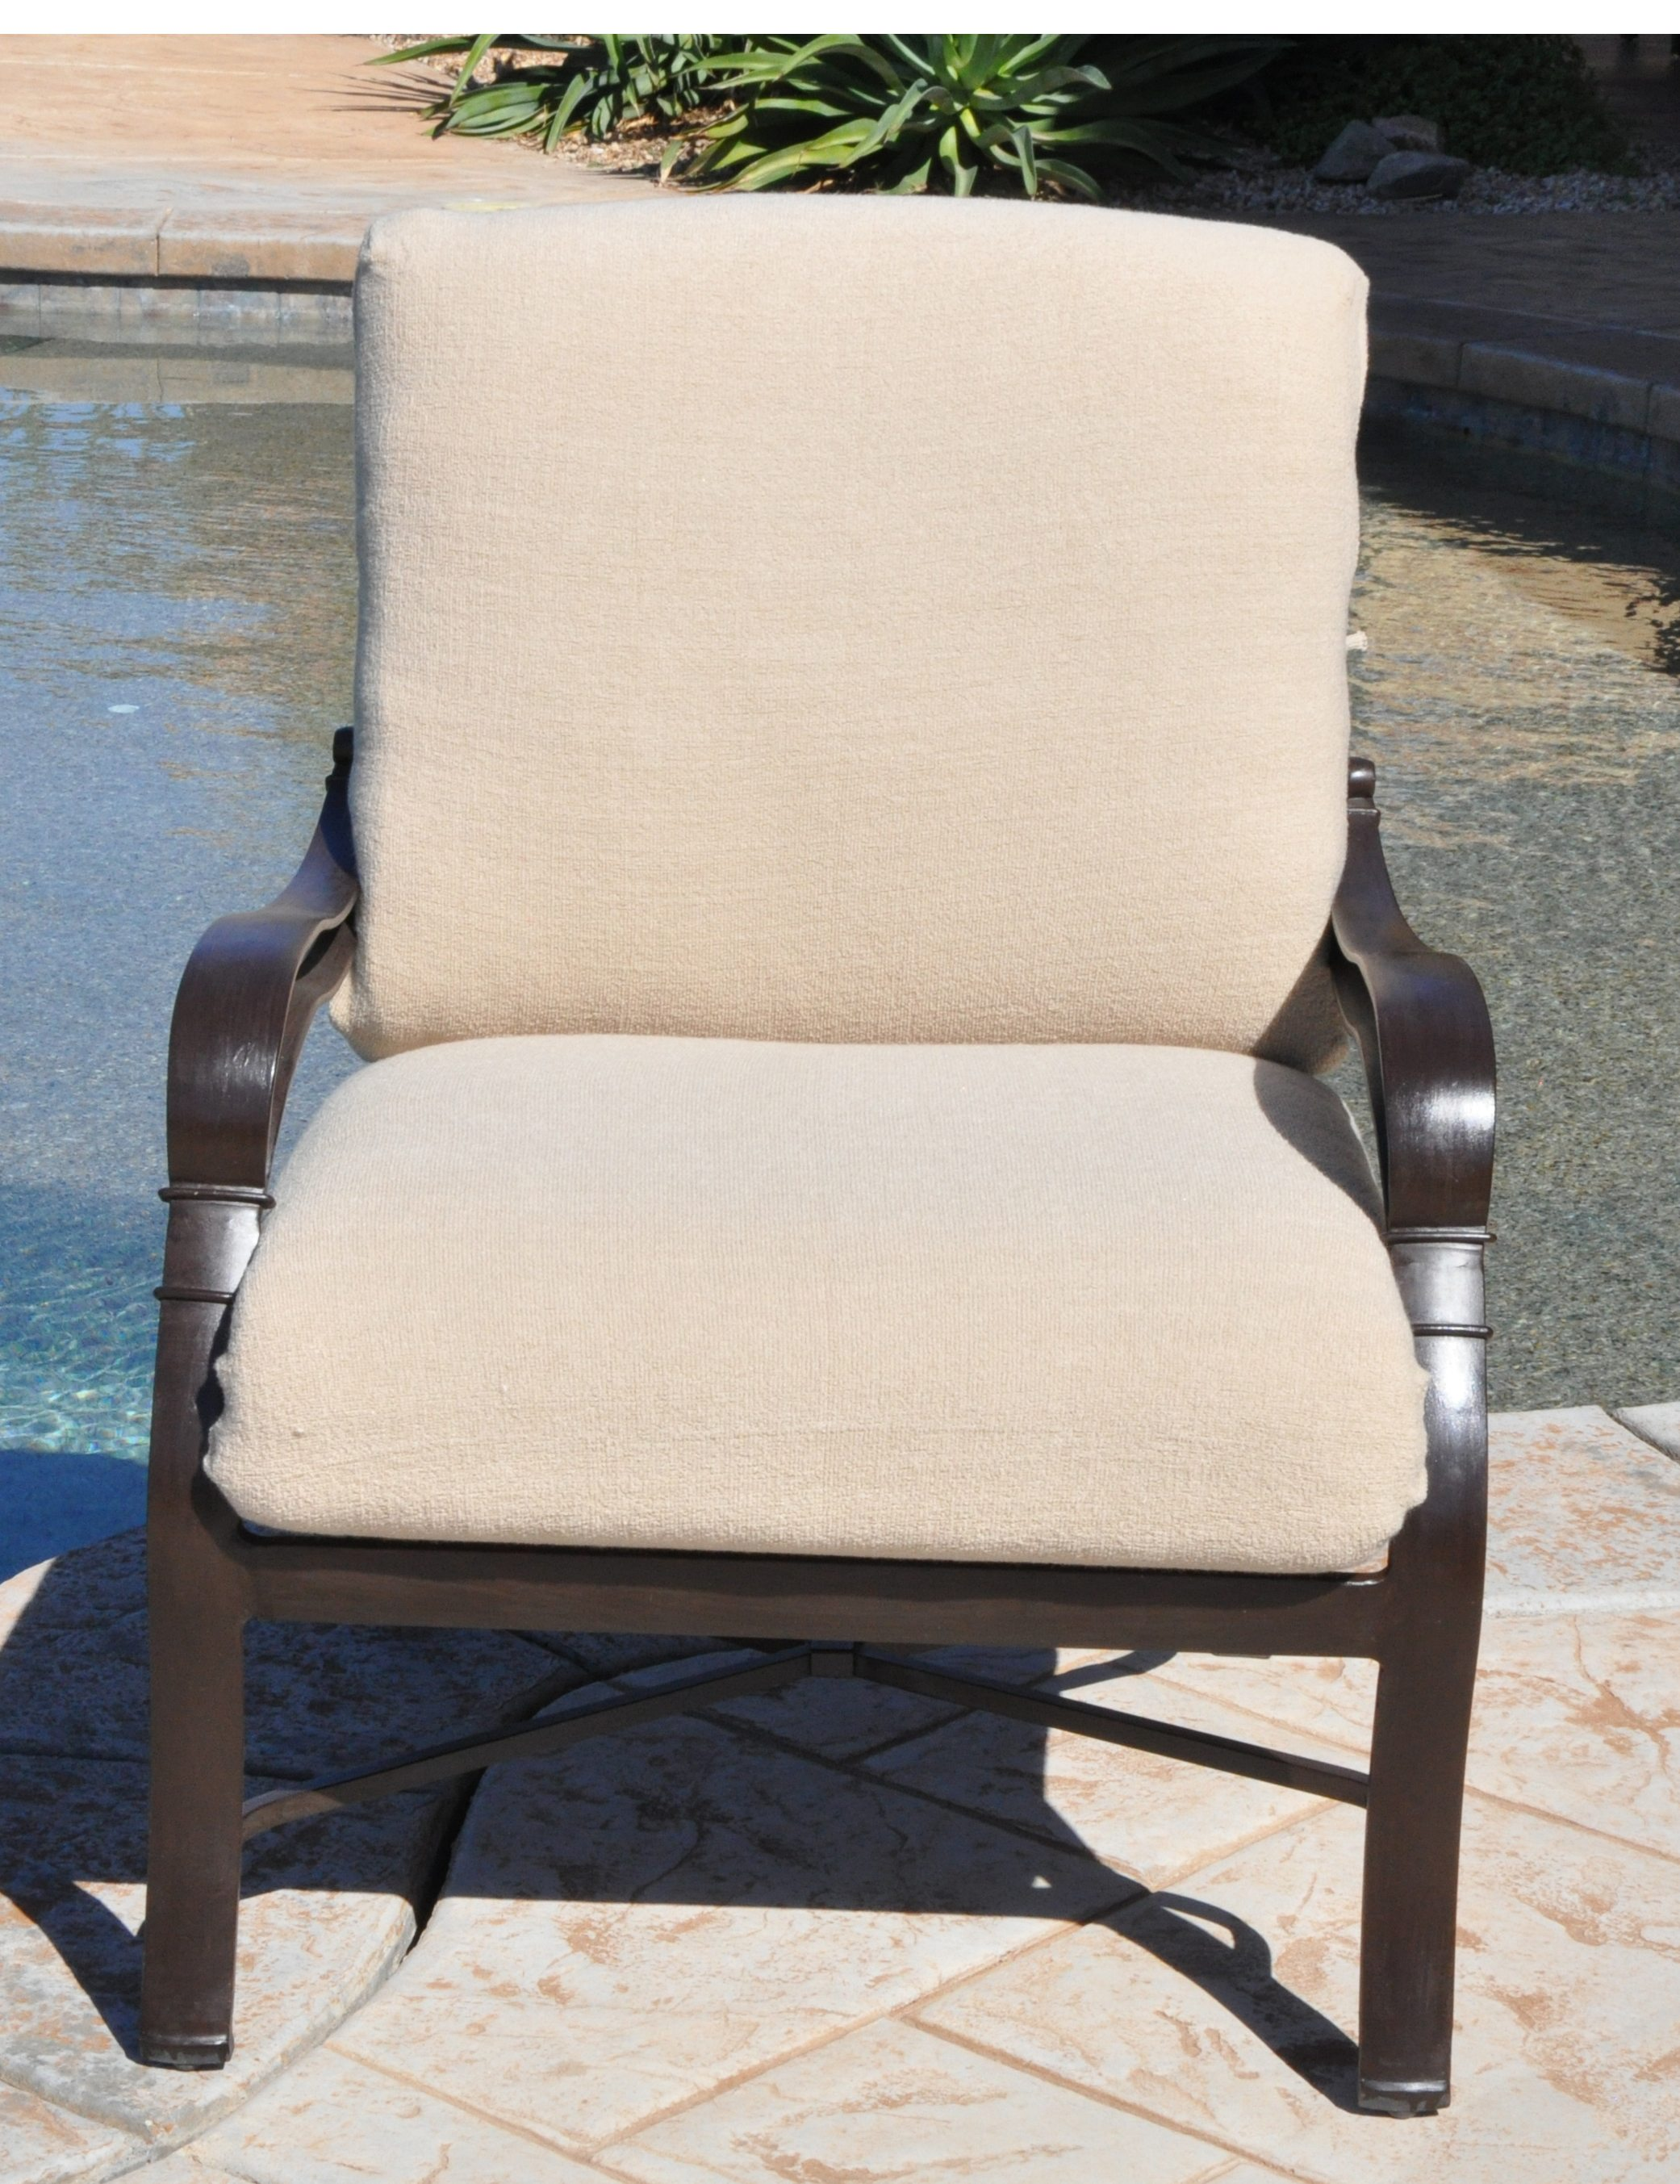 Outdoor Deep Seat Cushion Slipcovers (2 piece) - CushyChic